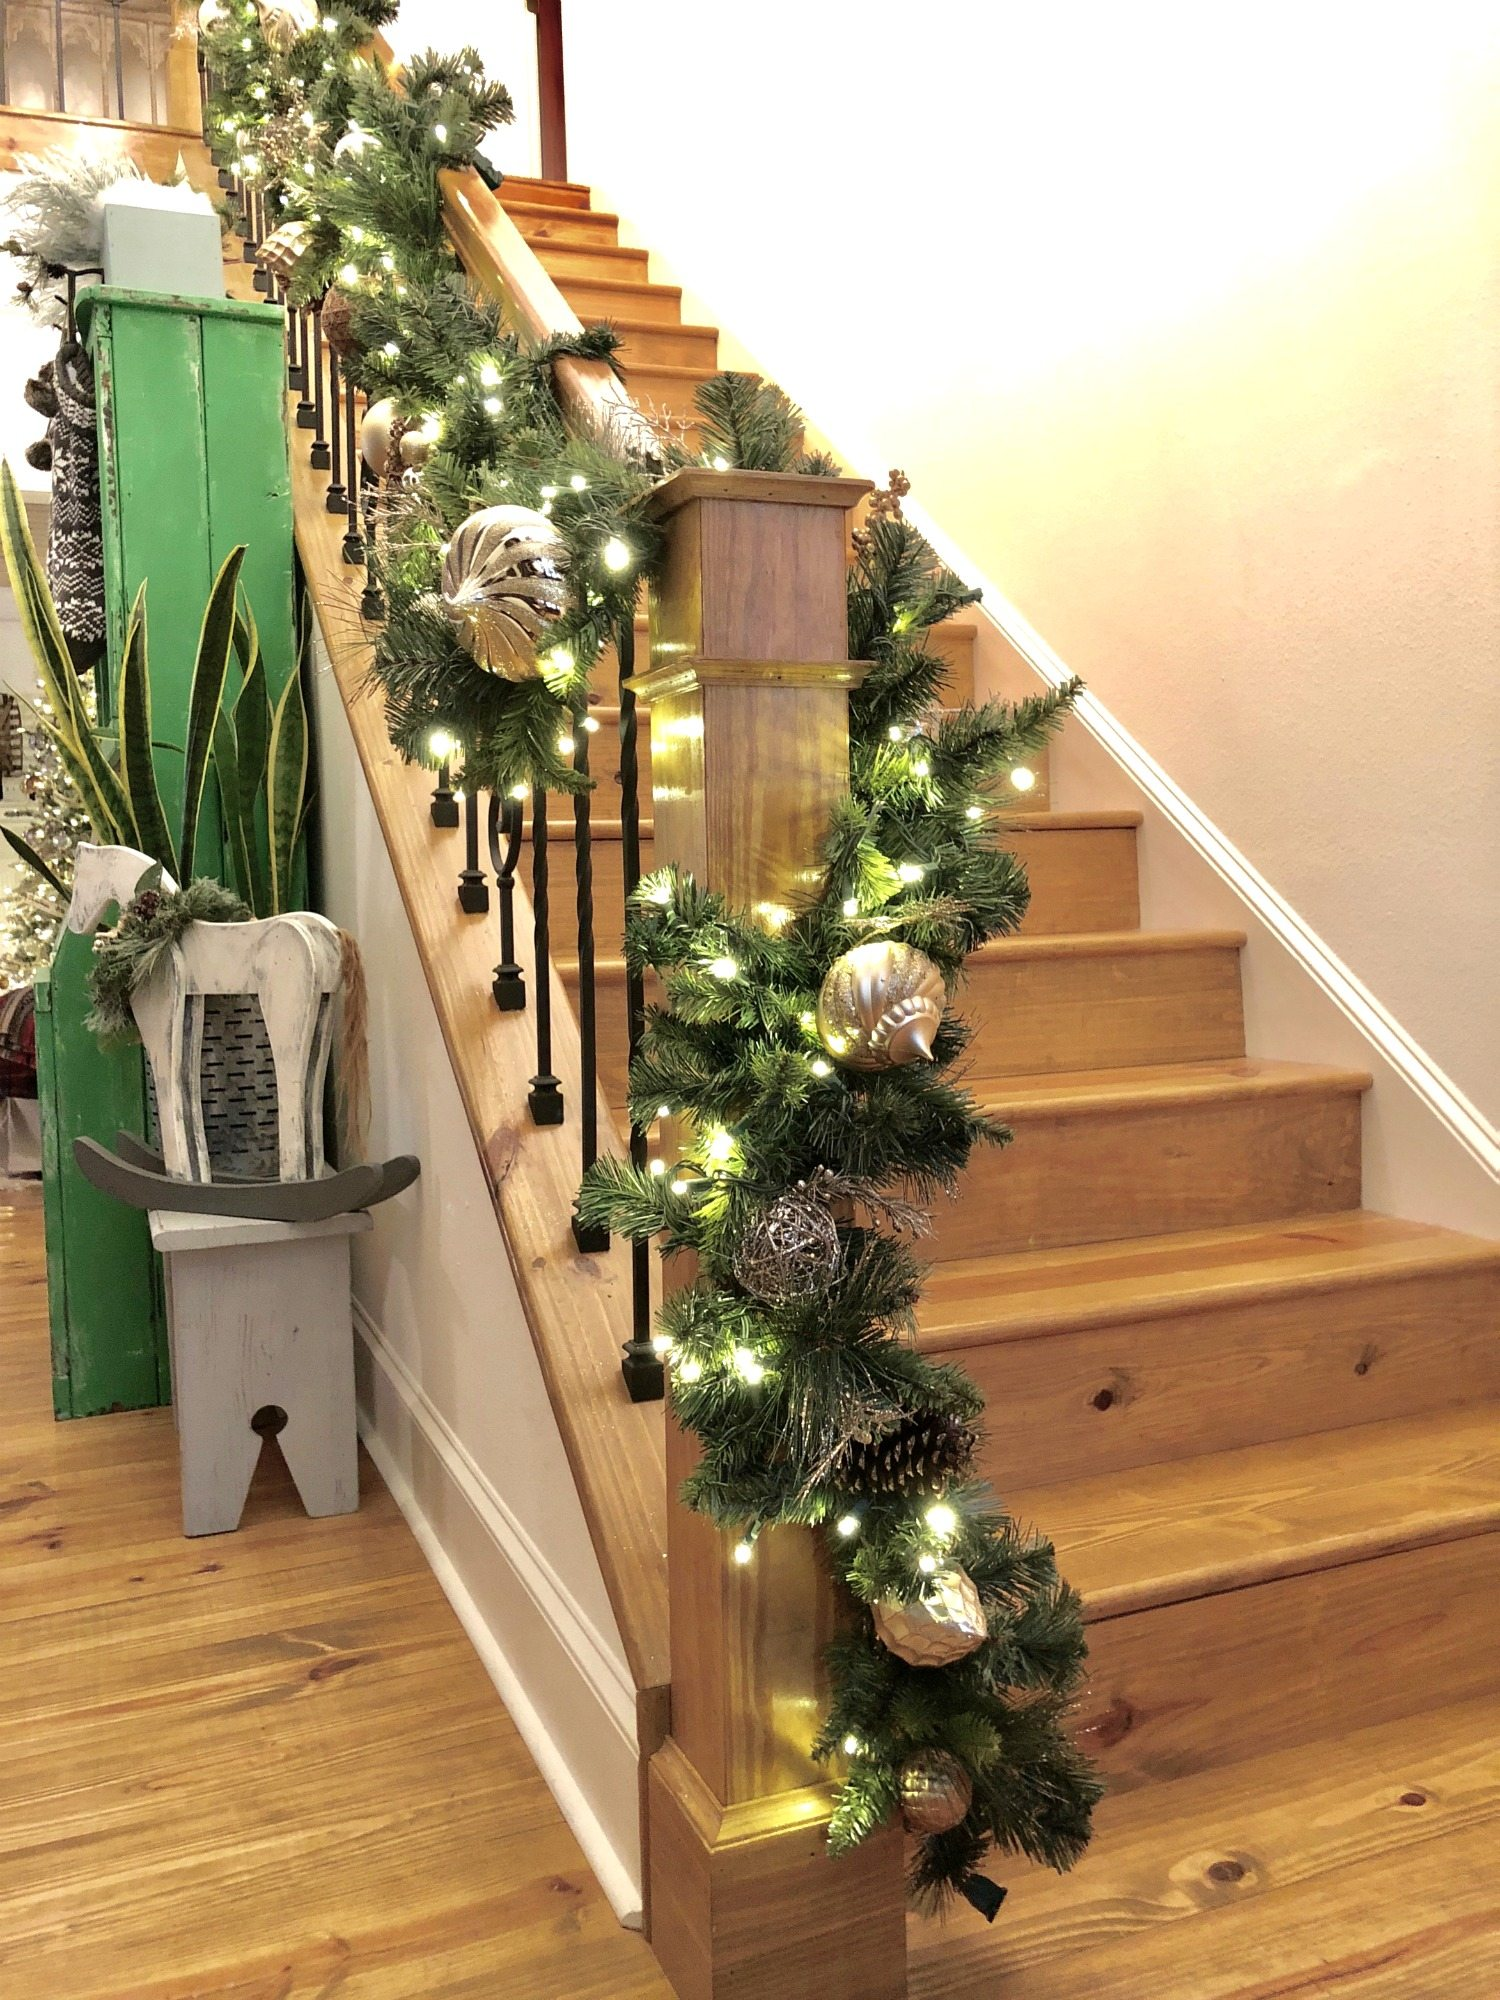 Christmas entry with lighted garland